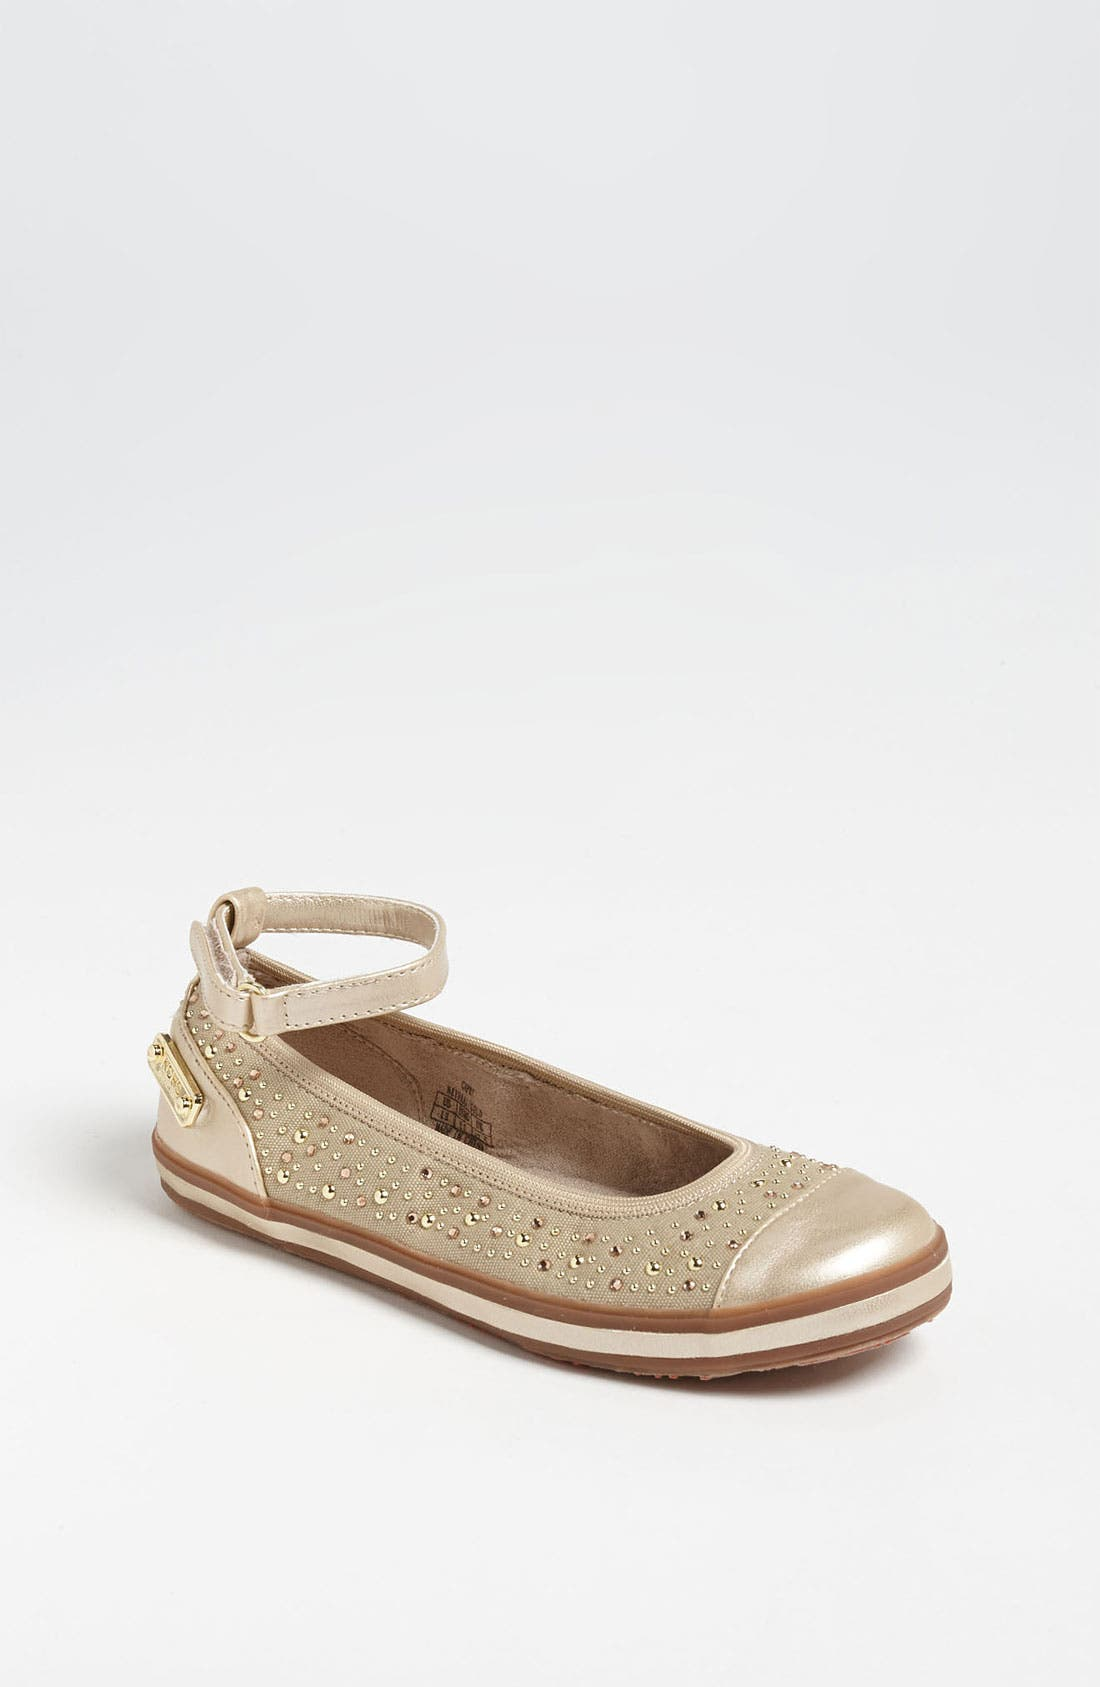 Alternate Image 1 Selected - KORS Michael Kors 'Capri' Flat (Little Kid & Big Kid)